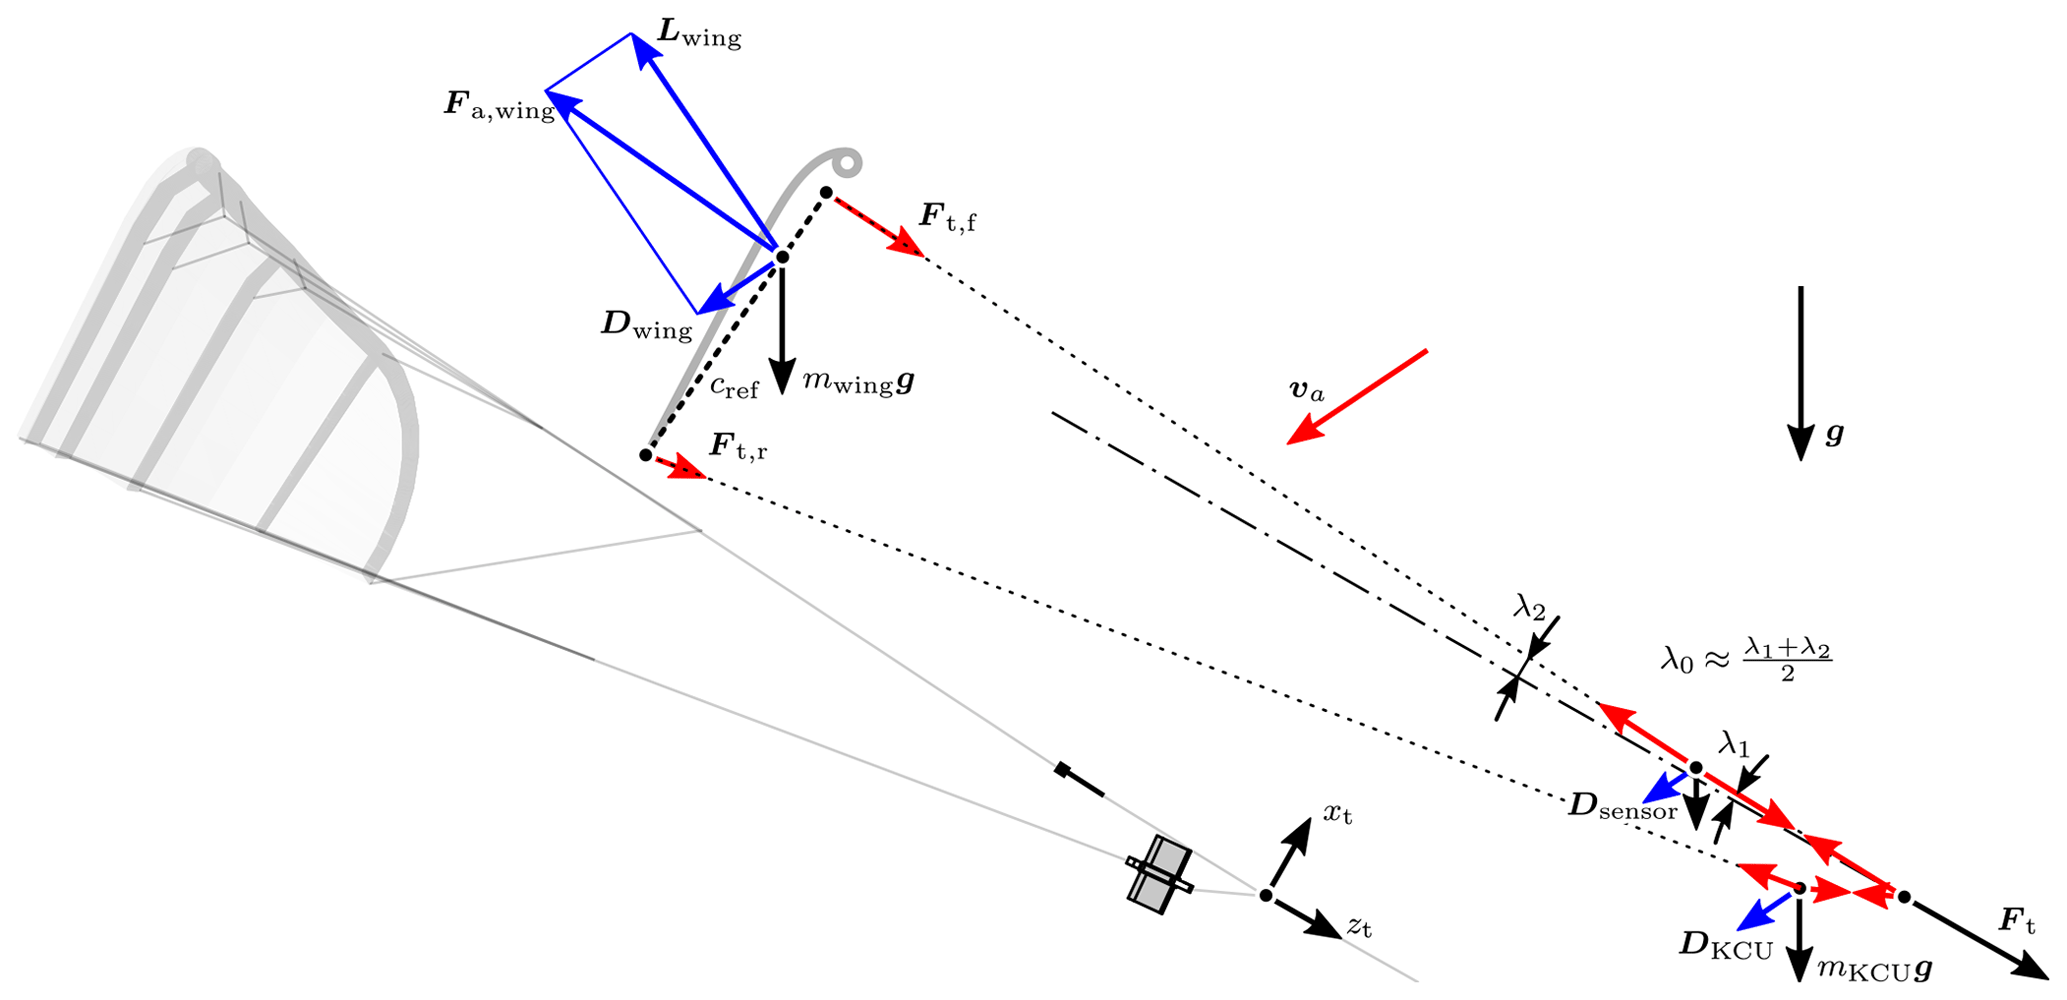 Wes Aerodynamic Characterization Of A Soft Kite By In Situ Flow Circle J Trailer Wiring Diagrams Https 4